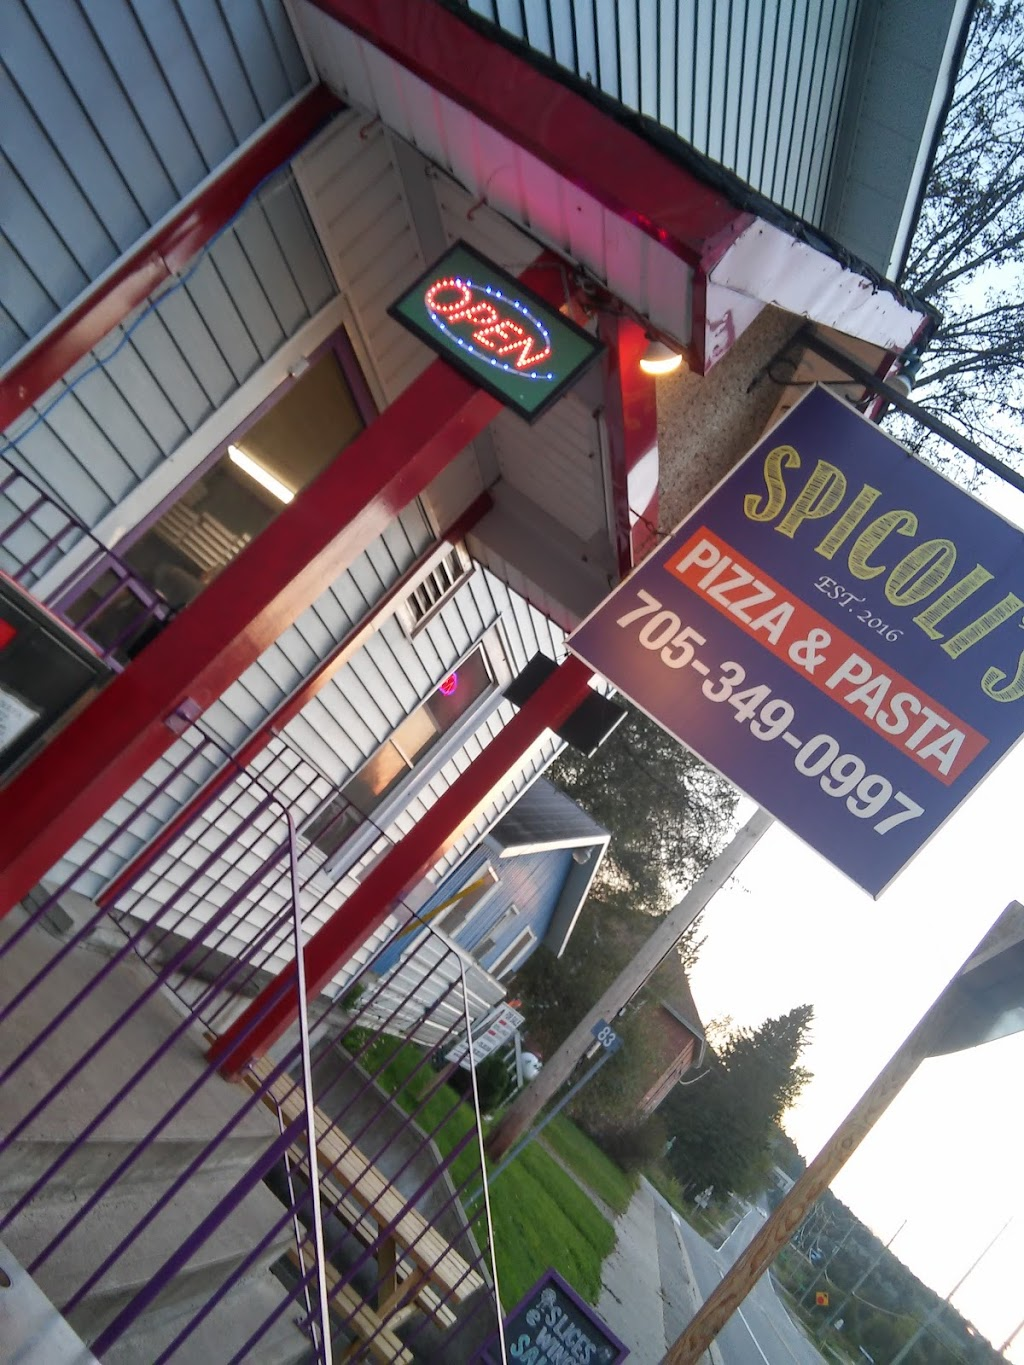 Spicolis Pizza | restaurant | 83 ON-518, Emsdale, ON P0A 1J0, Canada | 7053490997 OR +1 705-349-0997